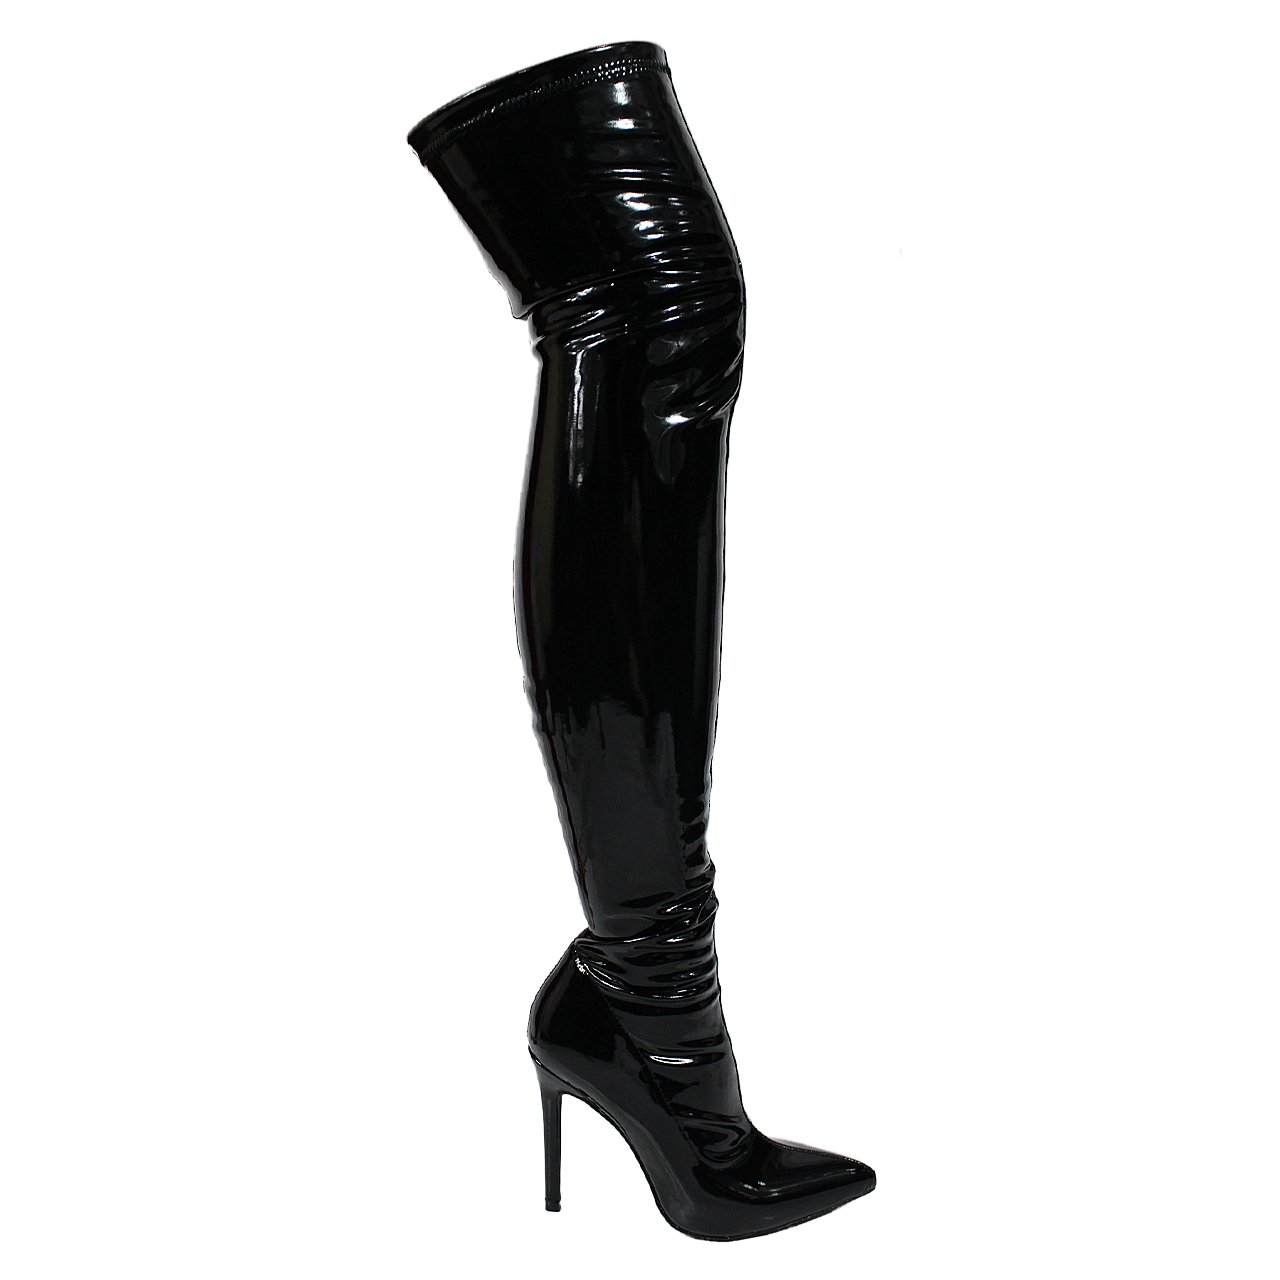 Ll Gisele 7 Thigh High Stretchy Suede Material Pointy Toe Stiletto Heel Boots Black,Black Shiny,9 by Unknown